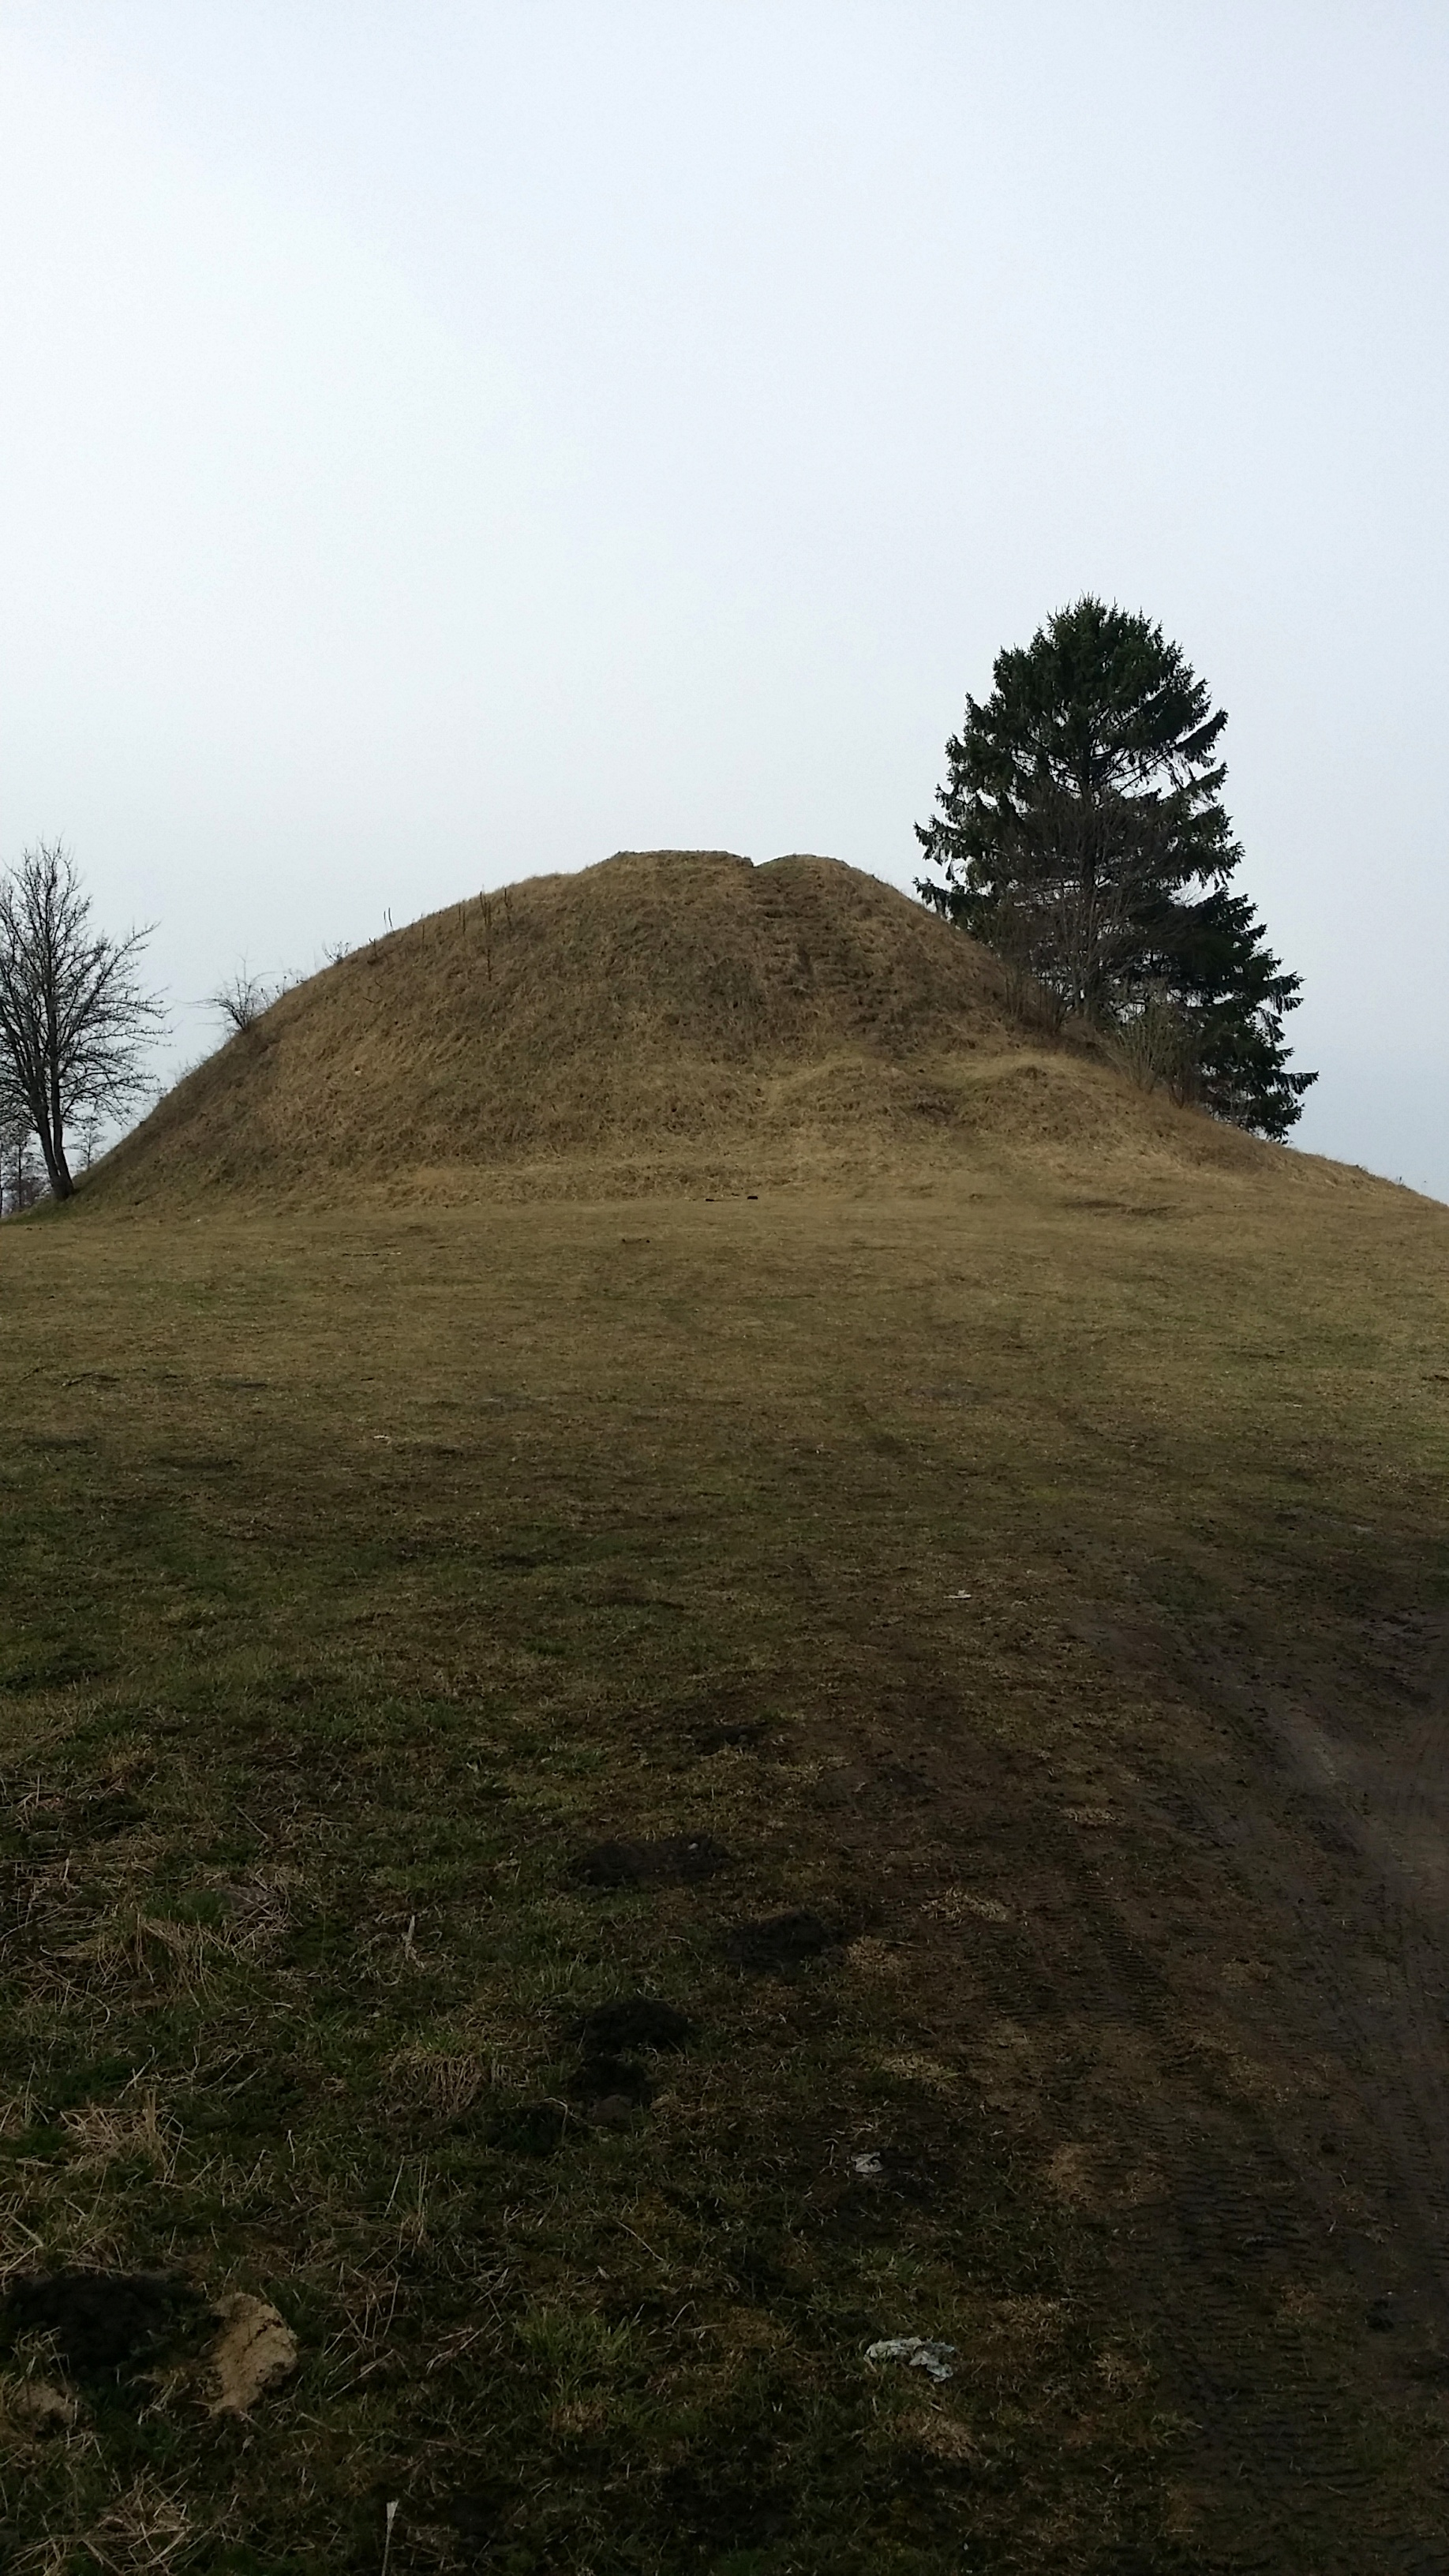 Mound of Sakaliskiai